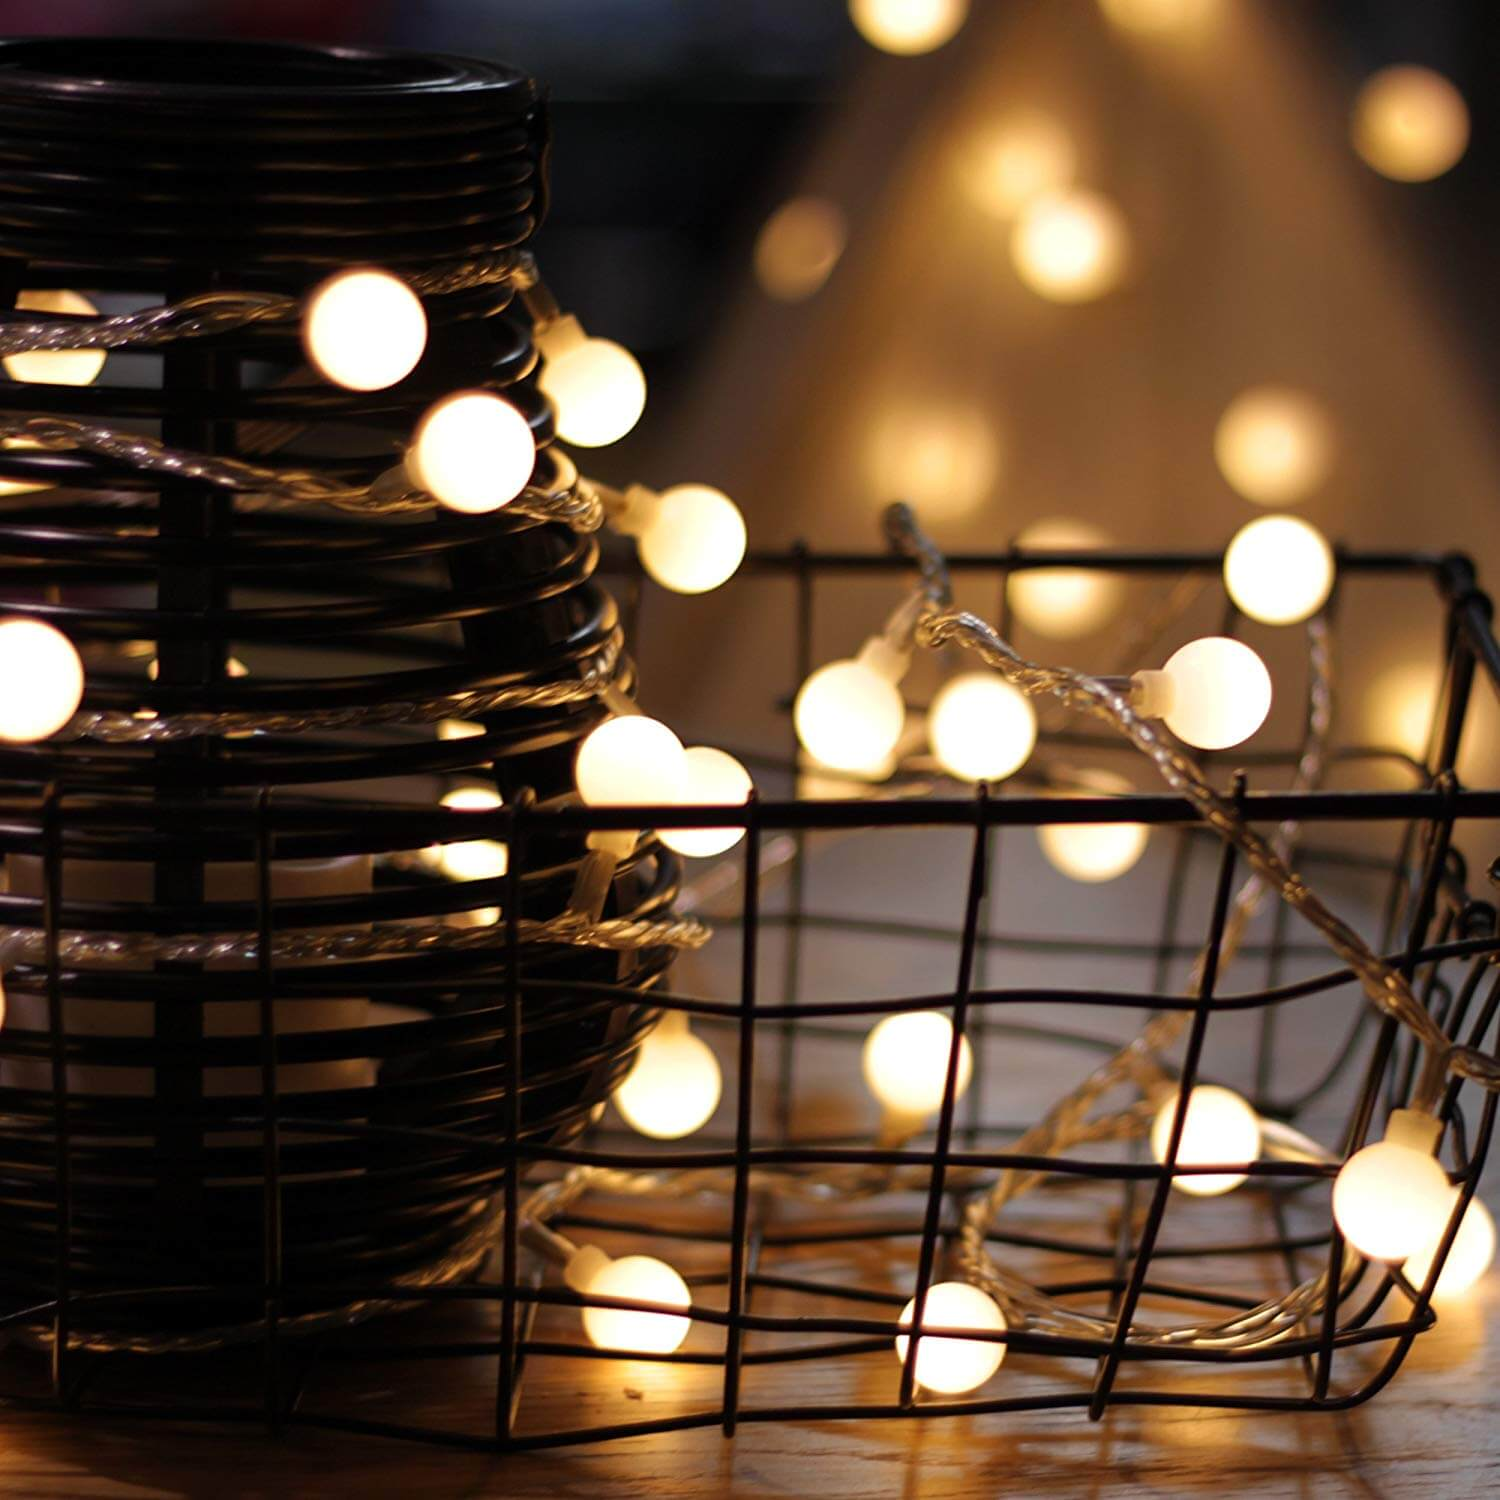 Top 10 Best String Lights For Christmas-5